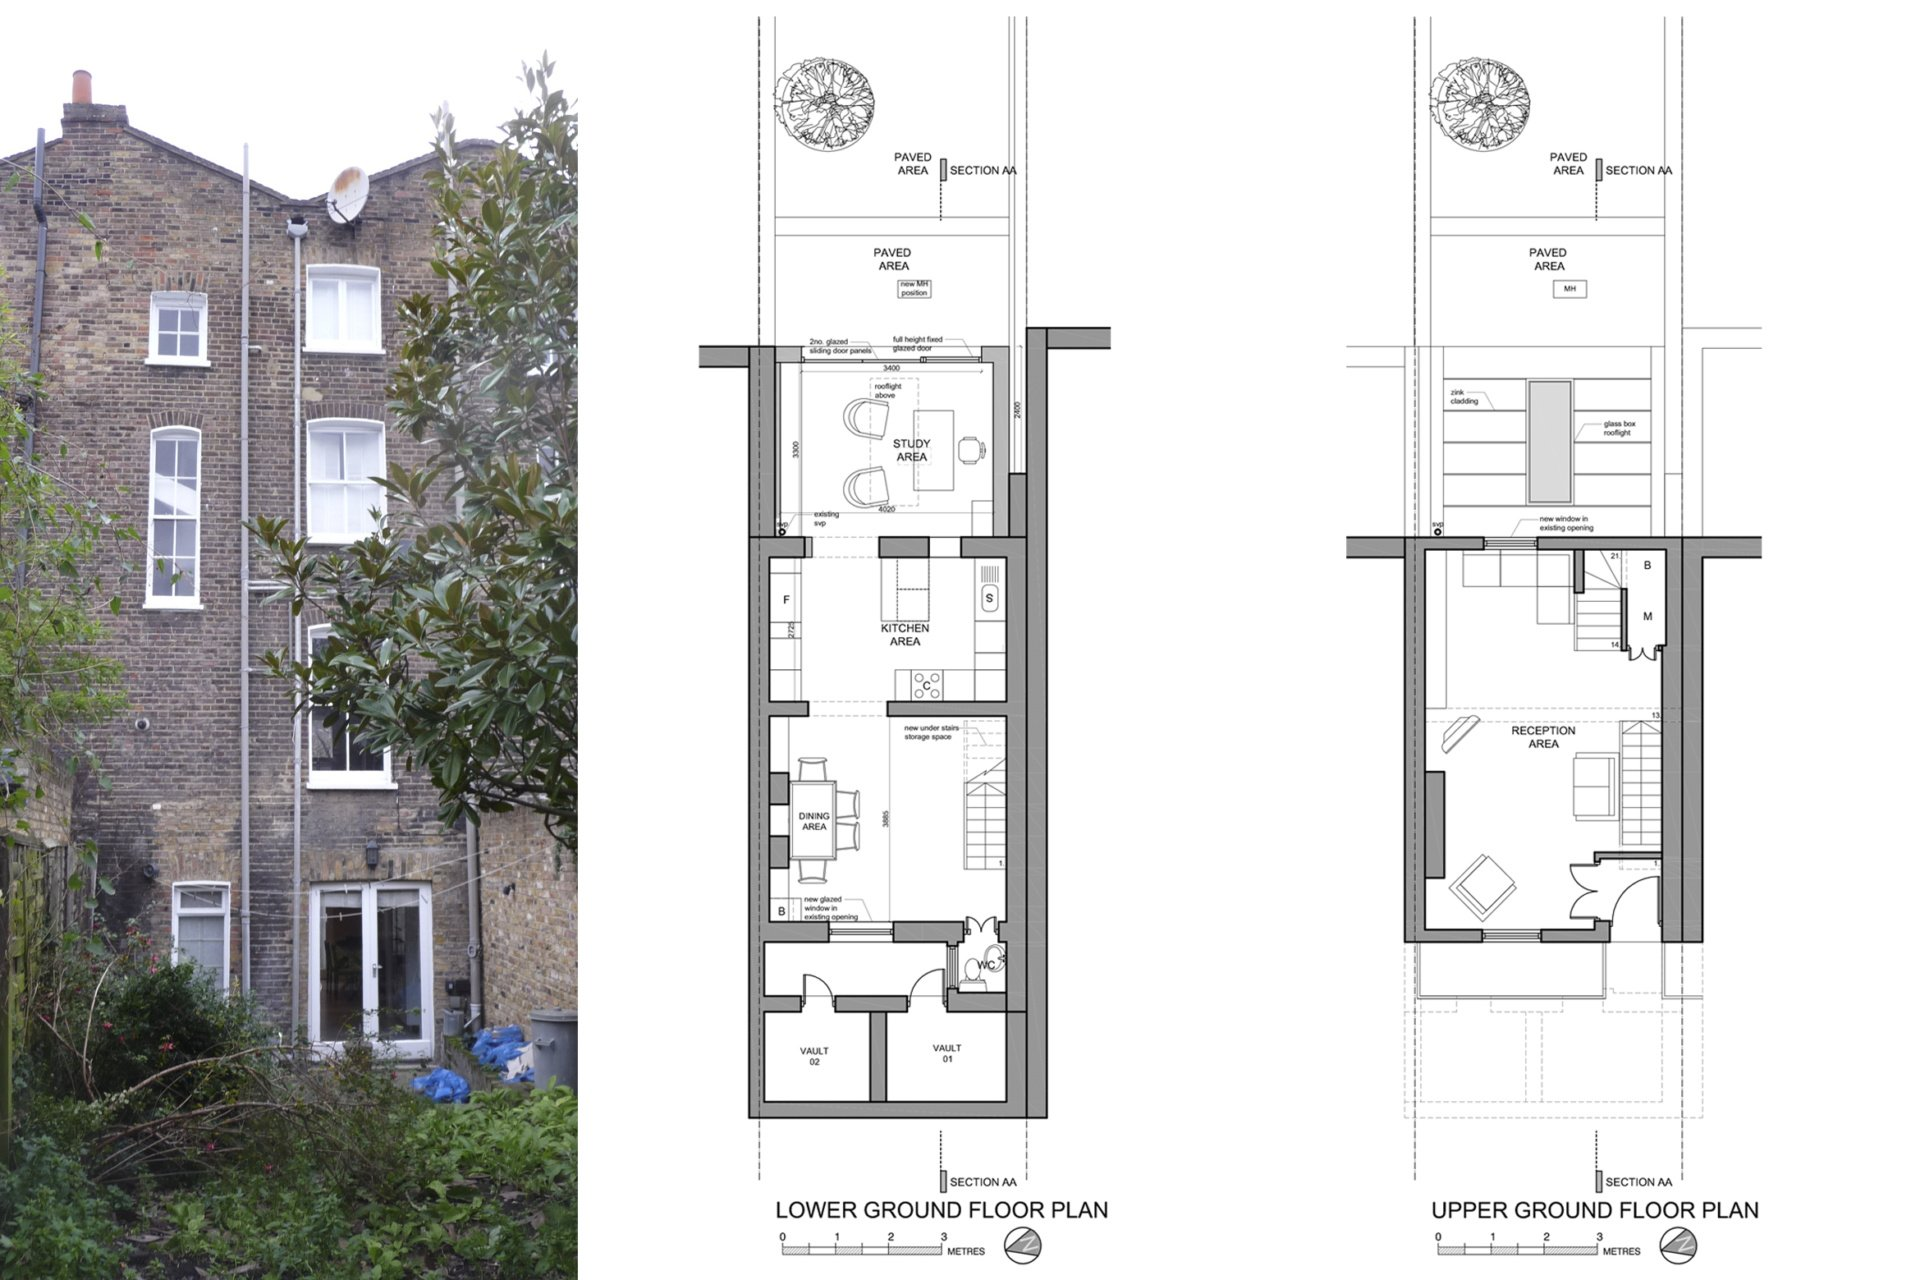 Angel Islington N1 Listed House rear extension – Floor plans and existing photo Angel, Islington N1 | Listed house rear extension